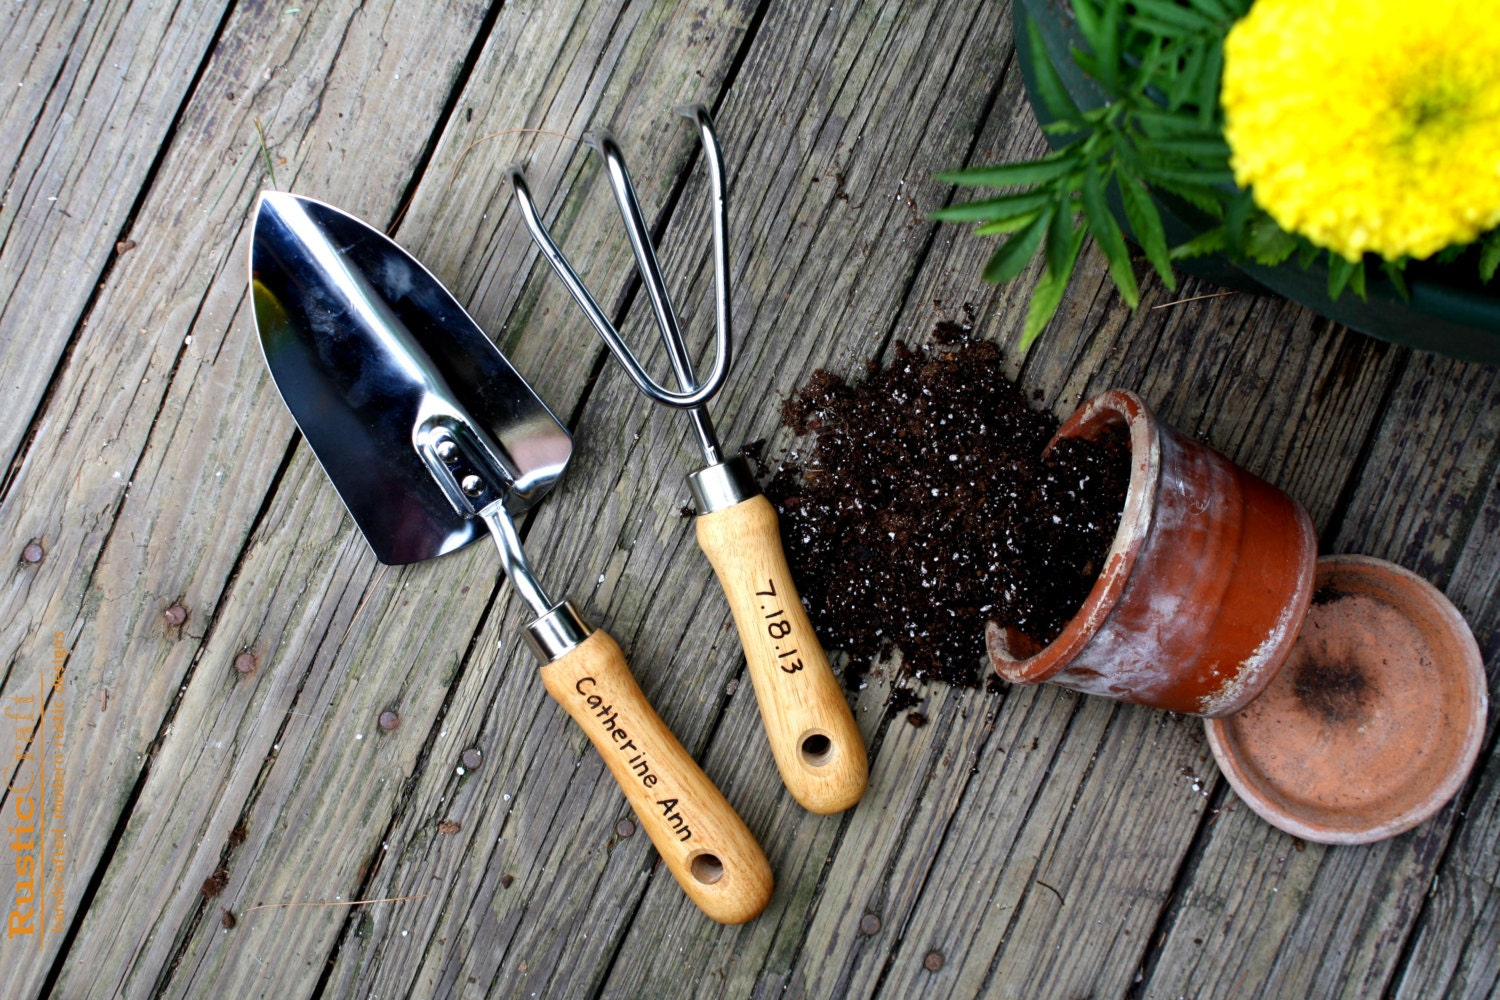 Personalized garden tool set hand trowel short shovel for Tools for backyard gardening